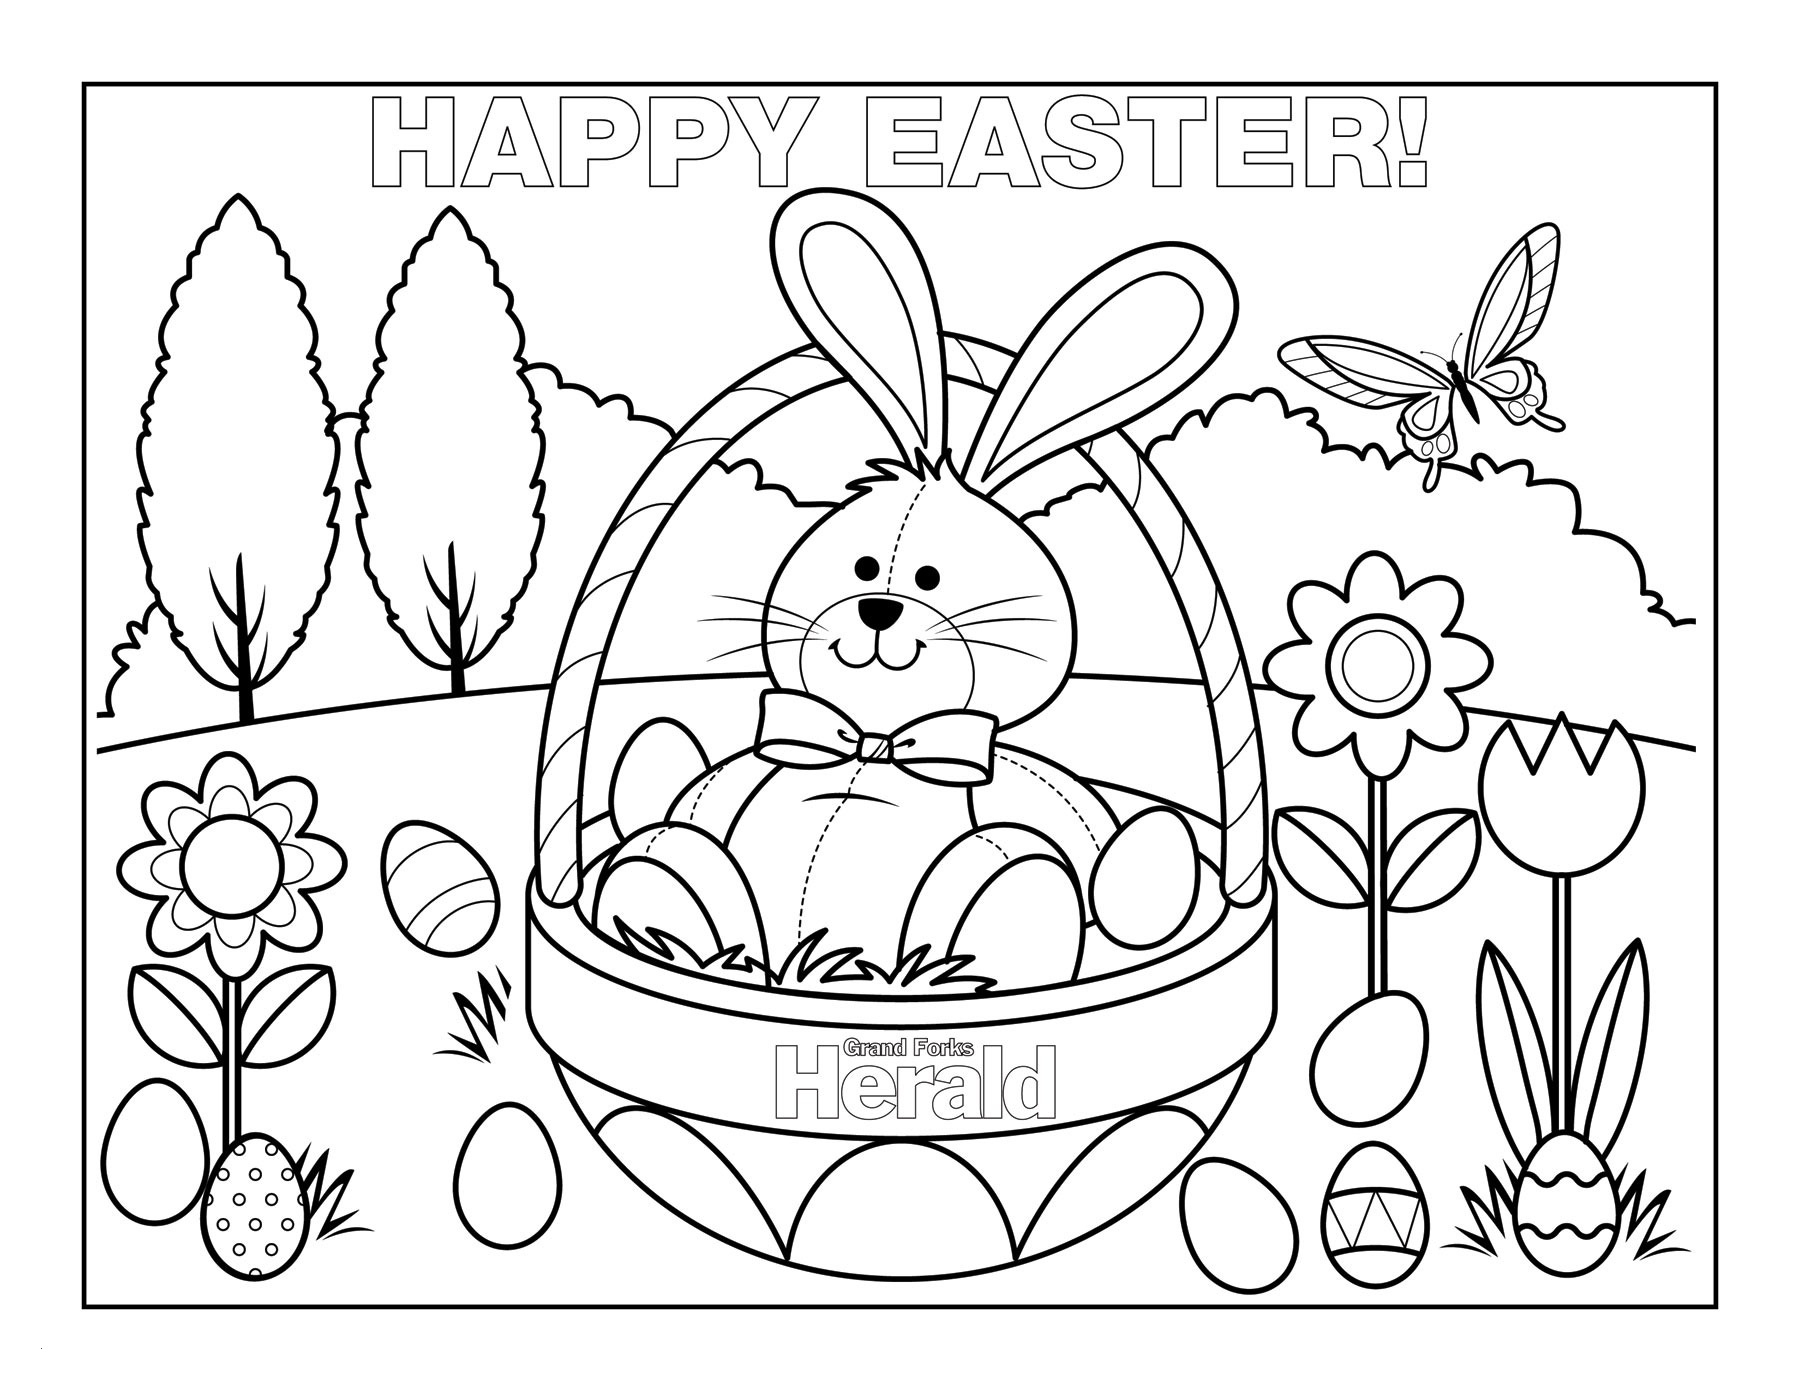 Coloring Pages Easter Printable Best Of Free Printable Easter - Free Printable Easter Coloring Pictures